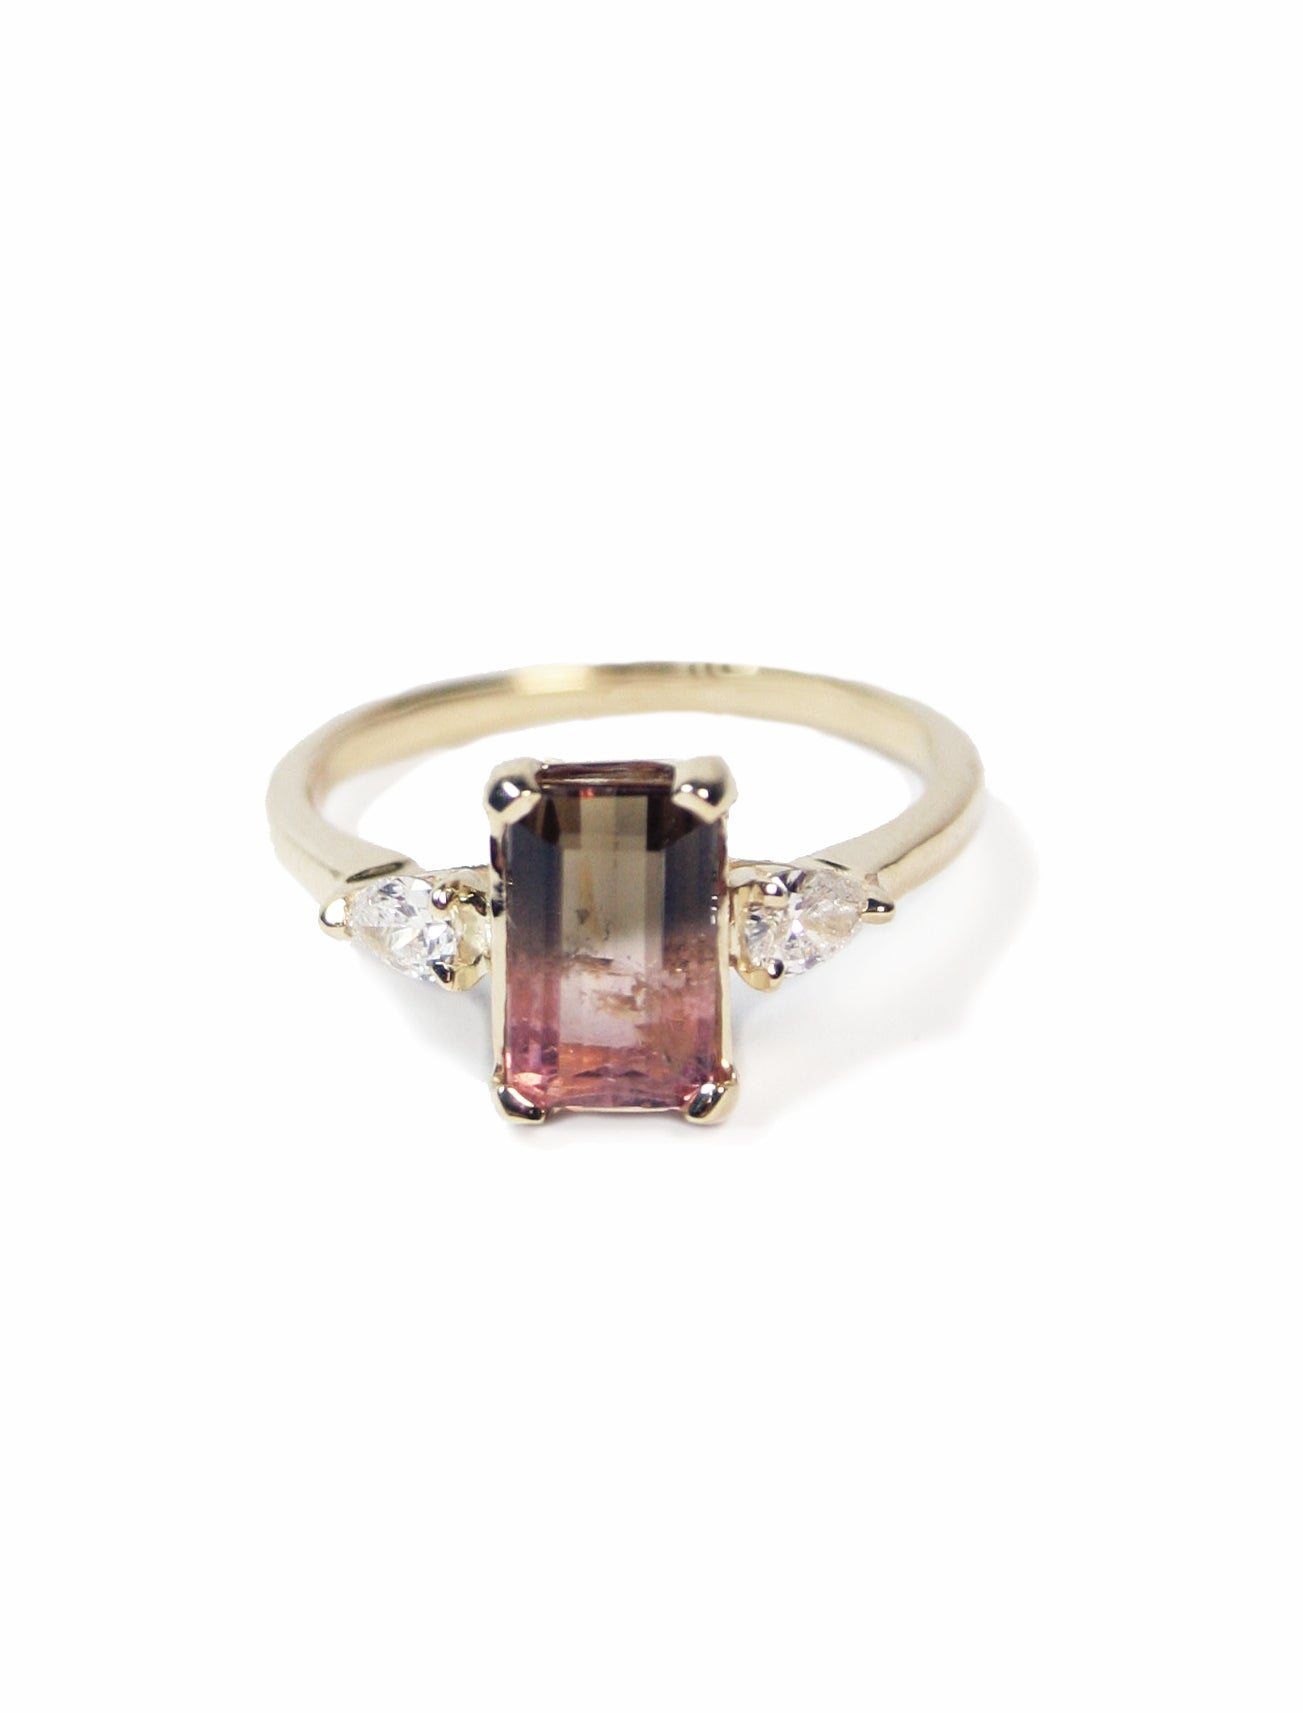 Unique Bi-Color Tourmaline Accented with Two Pear Shaped Diamonds on a Gold Band